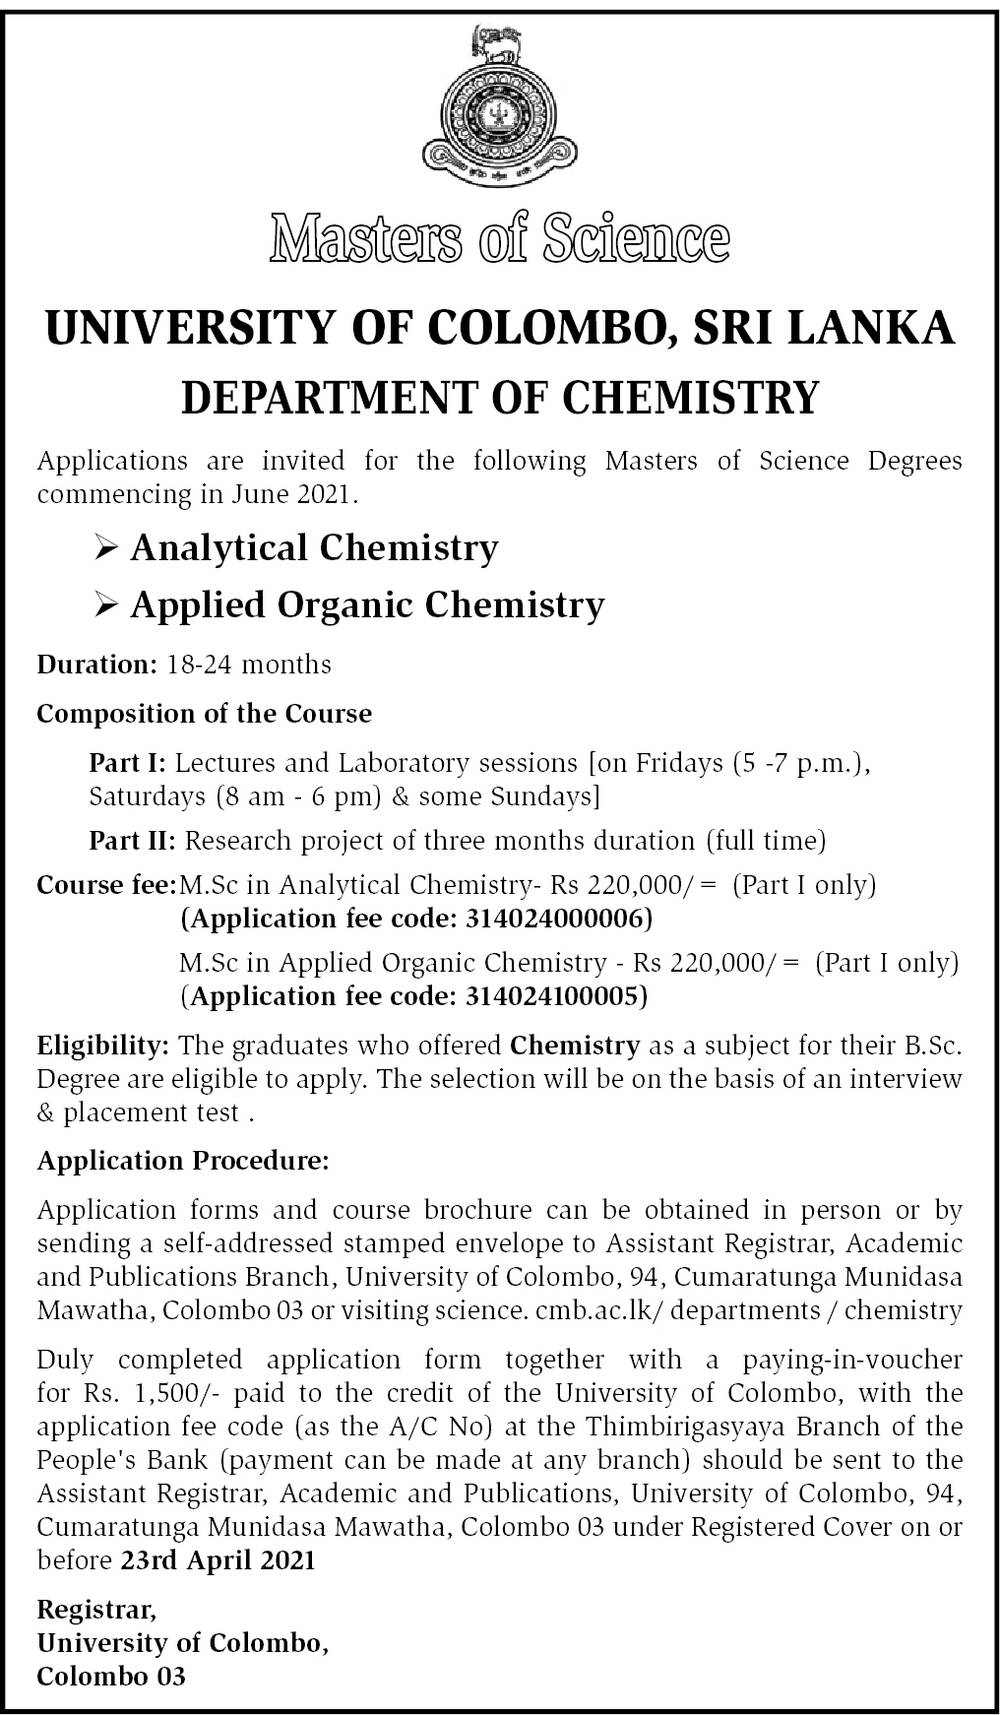 Analytical Chemistry Course, Applied Organic Chemistry Course - Masters of Science - University of Colombo